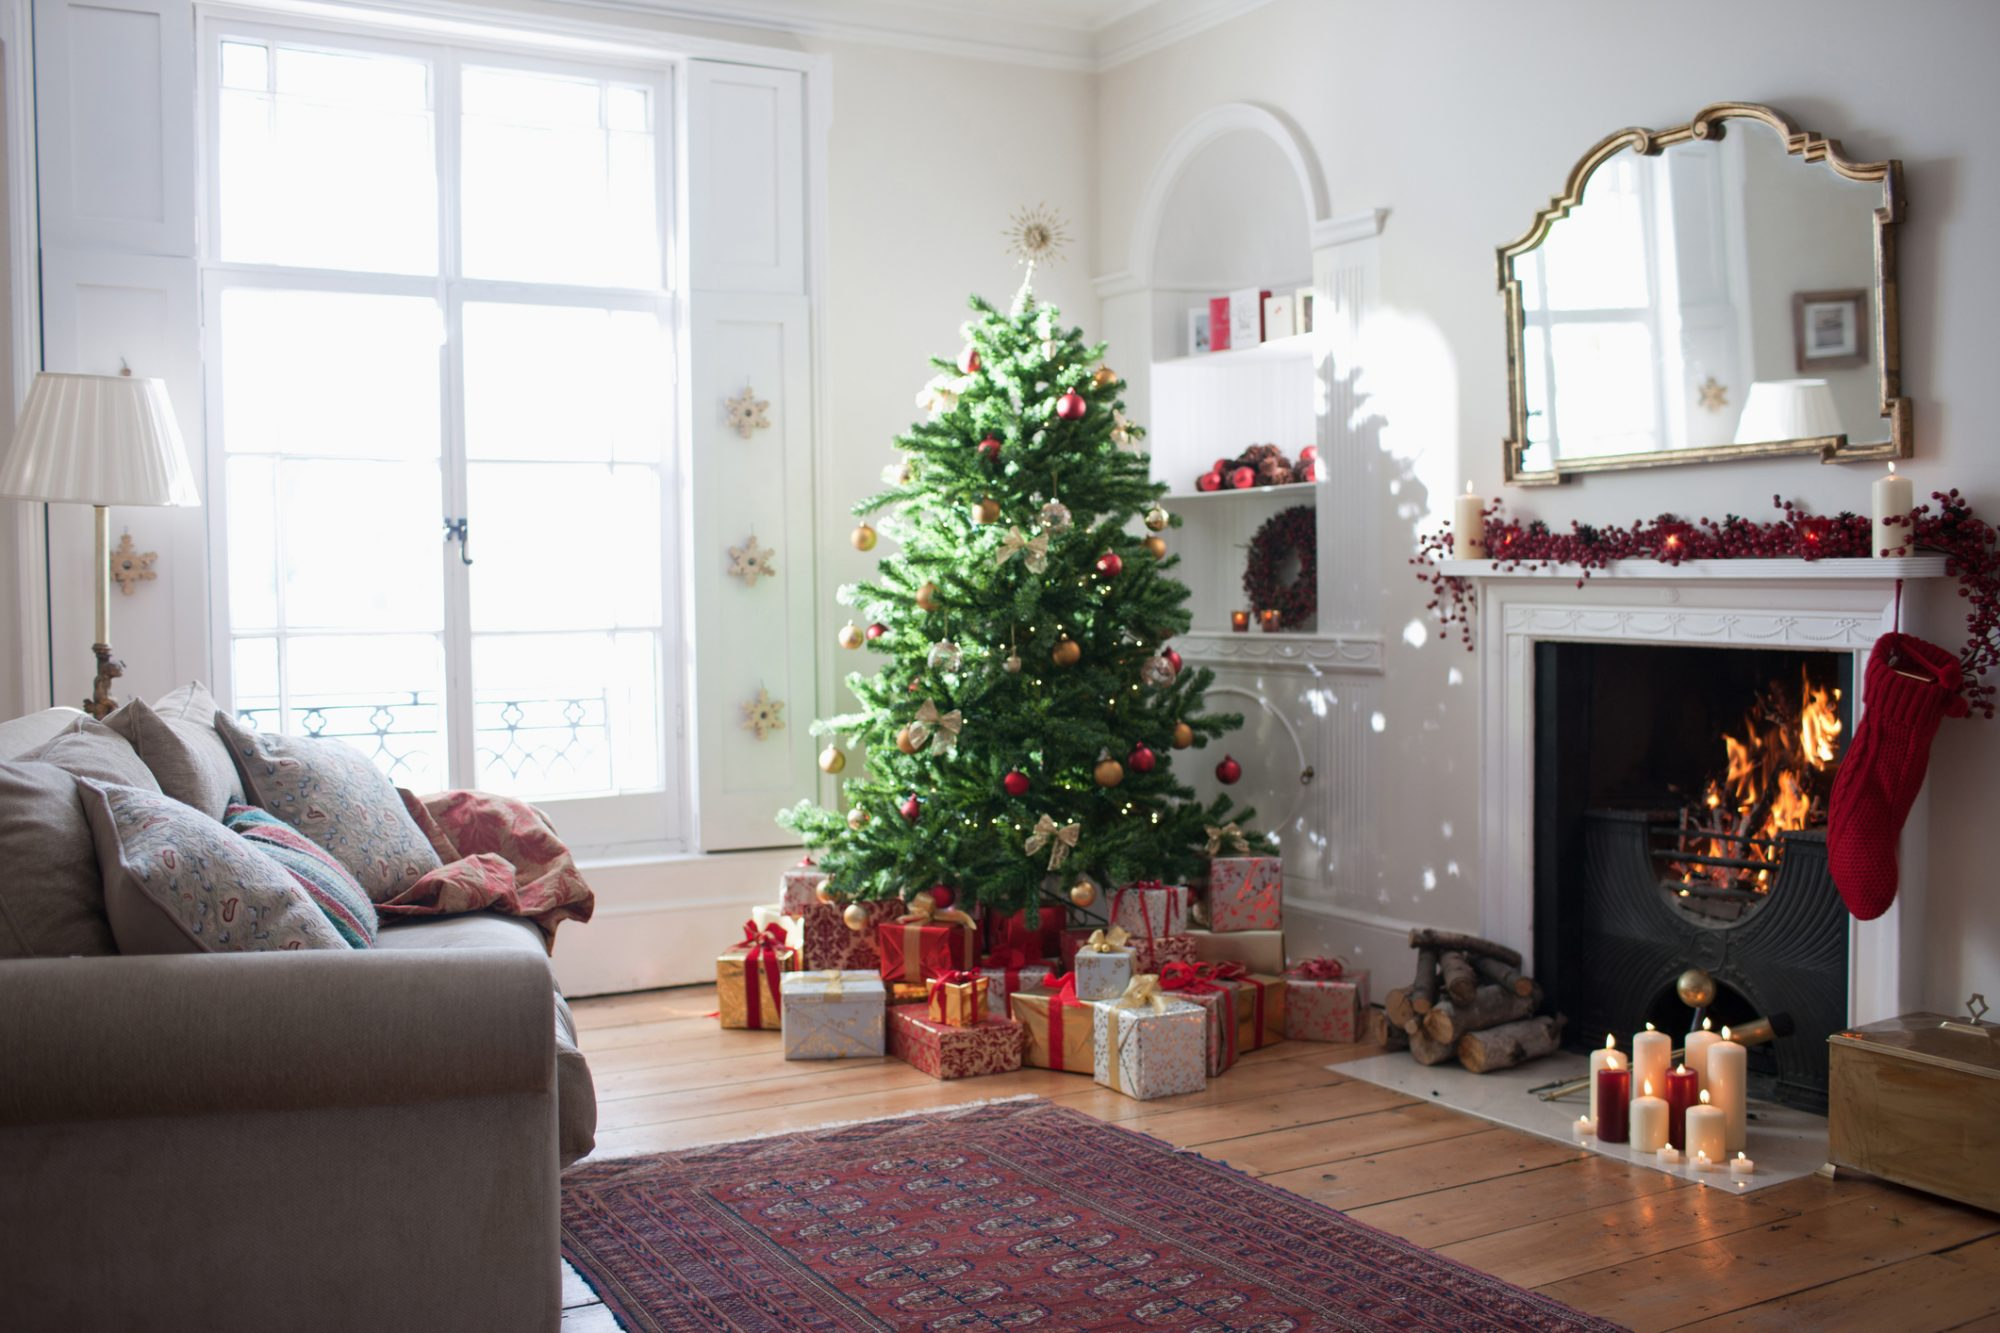 How To Decorate A Small Space For The Holidays